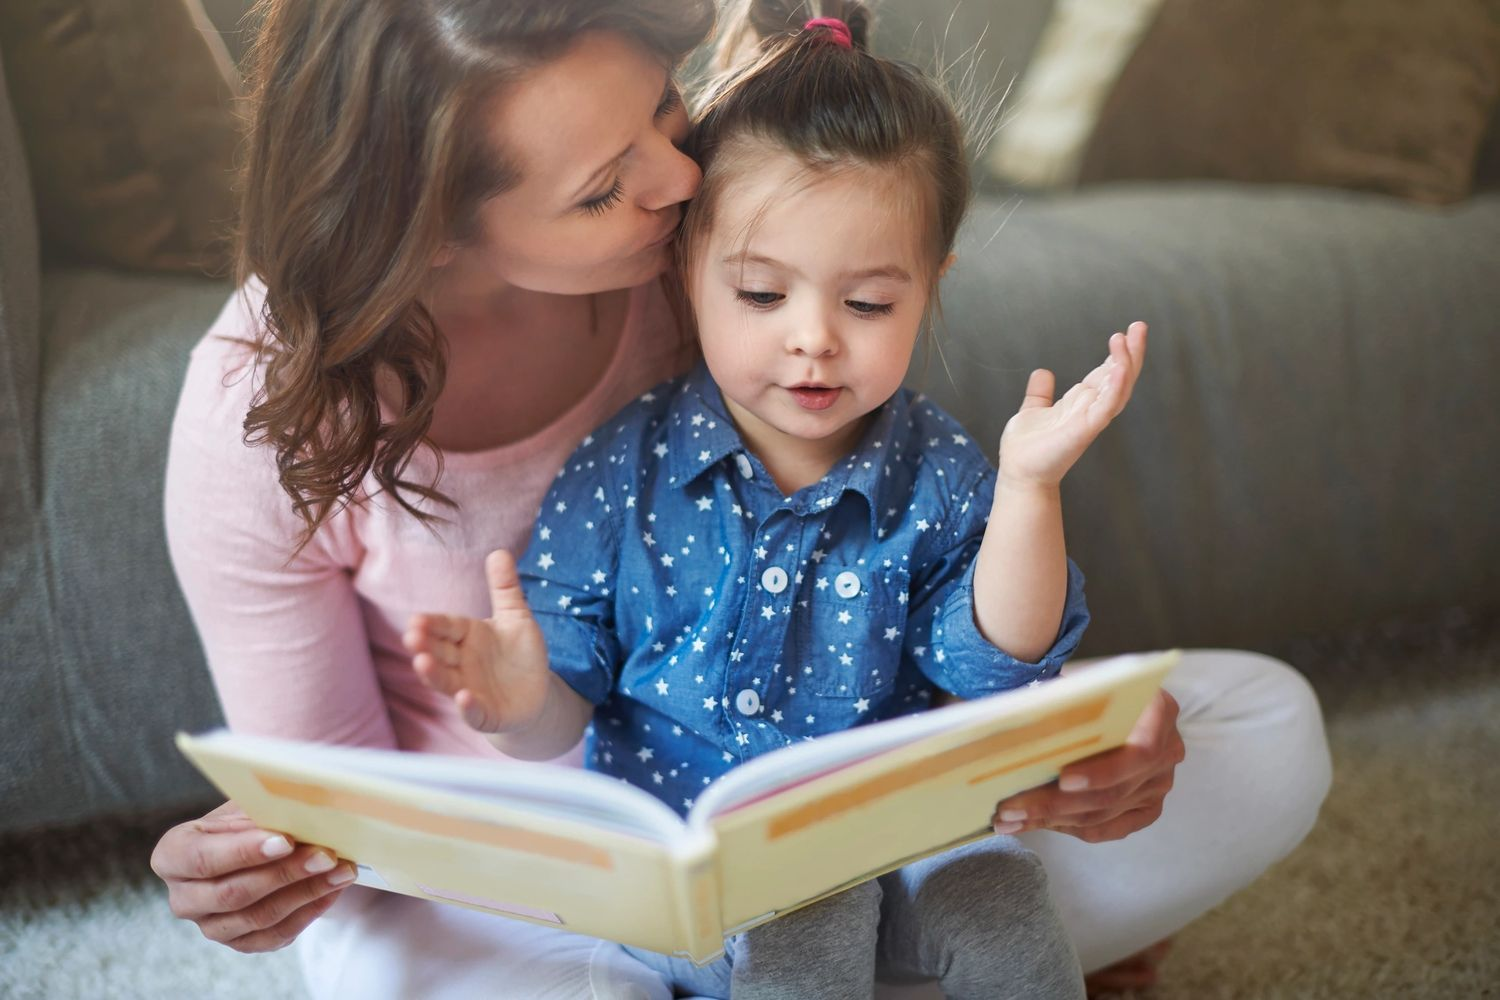 Mother reading to child in a safe environment.